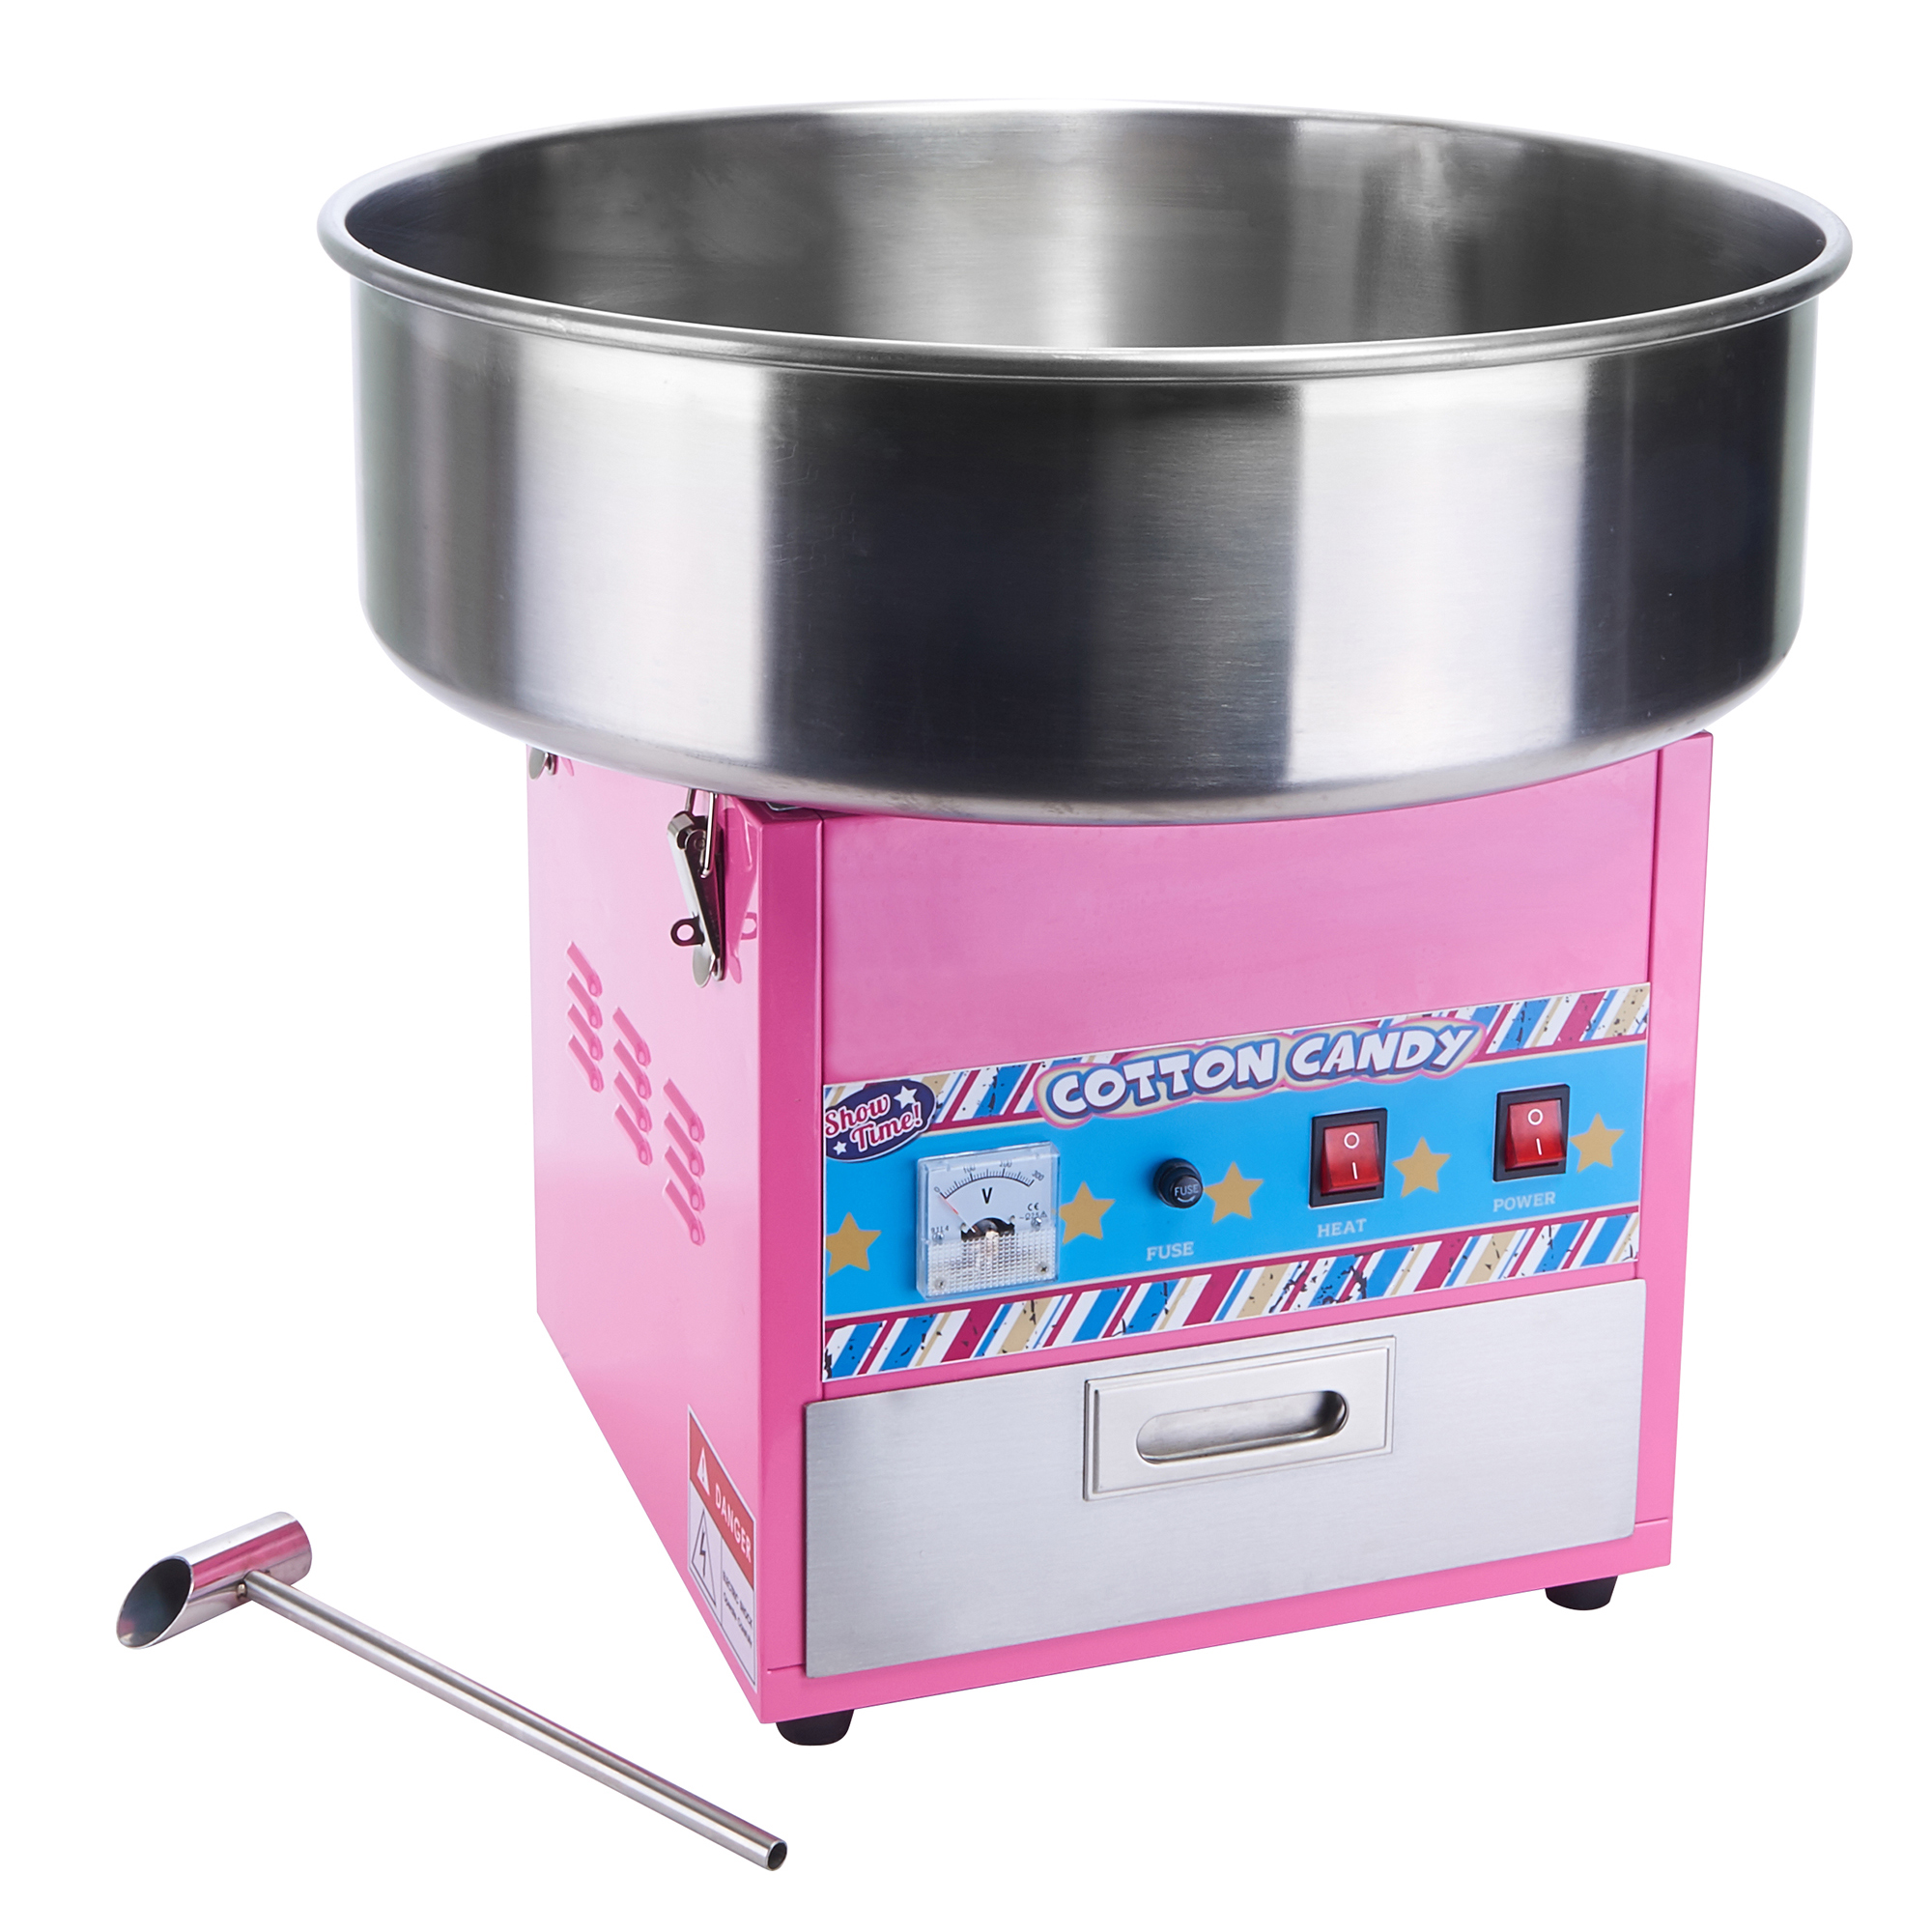 Winco CCM-28 cotton candy machine & display